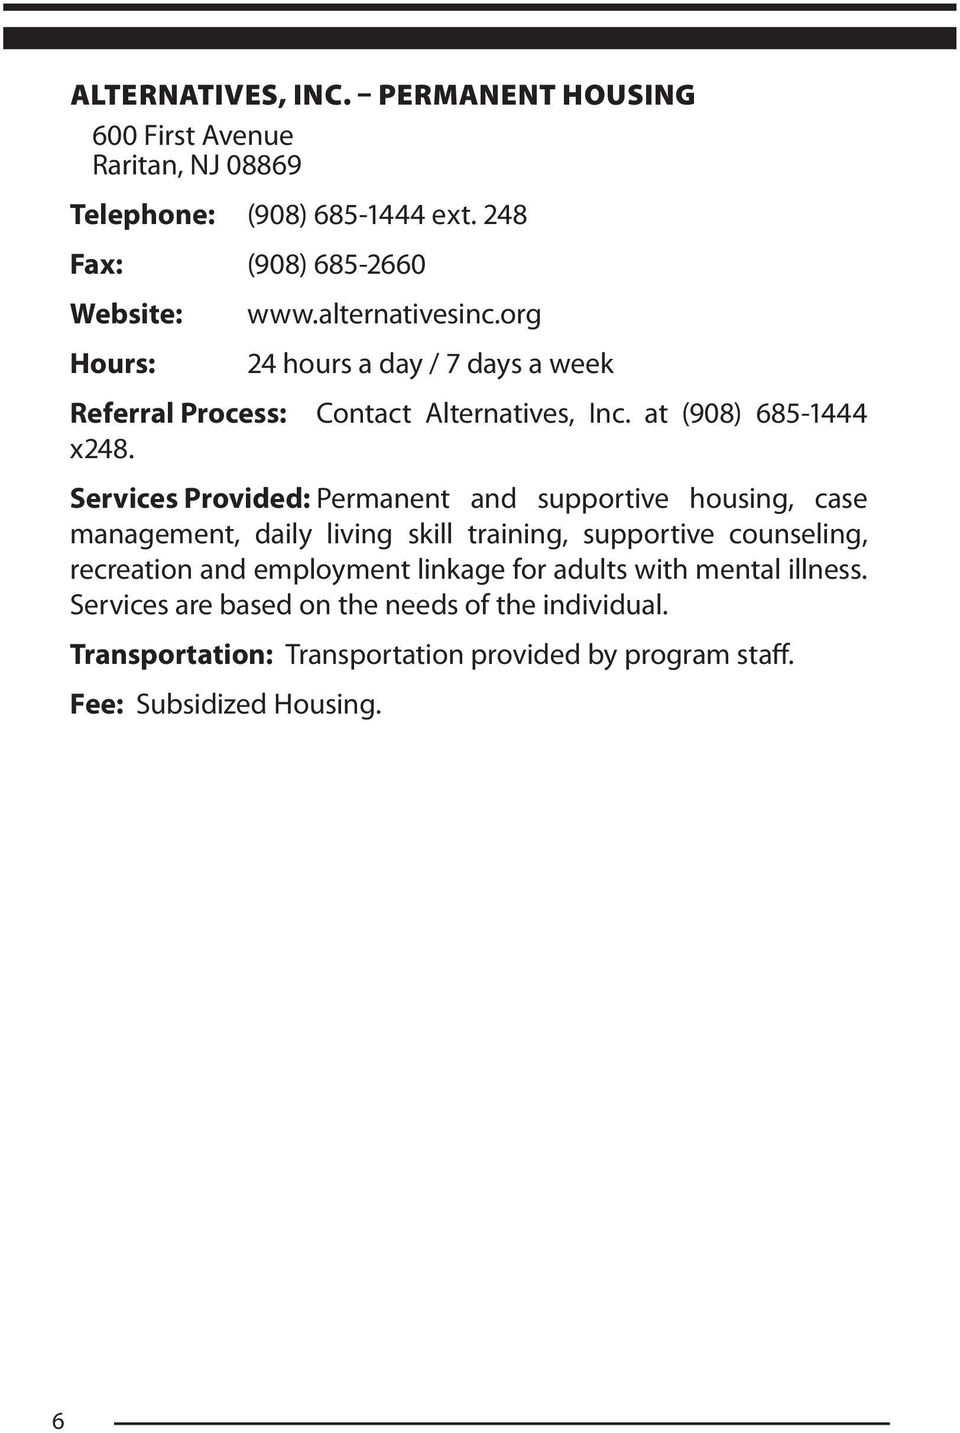 Services Provided: Permanent and supportive housing, case management, daily living skill training, supportive counseling, recreation and employment